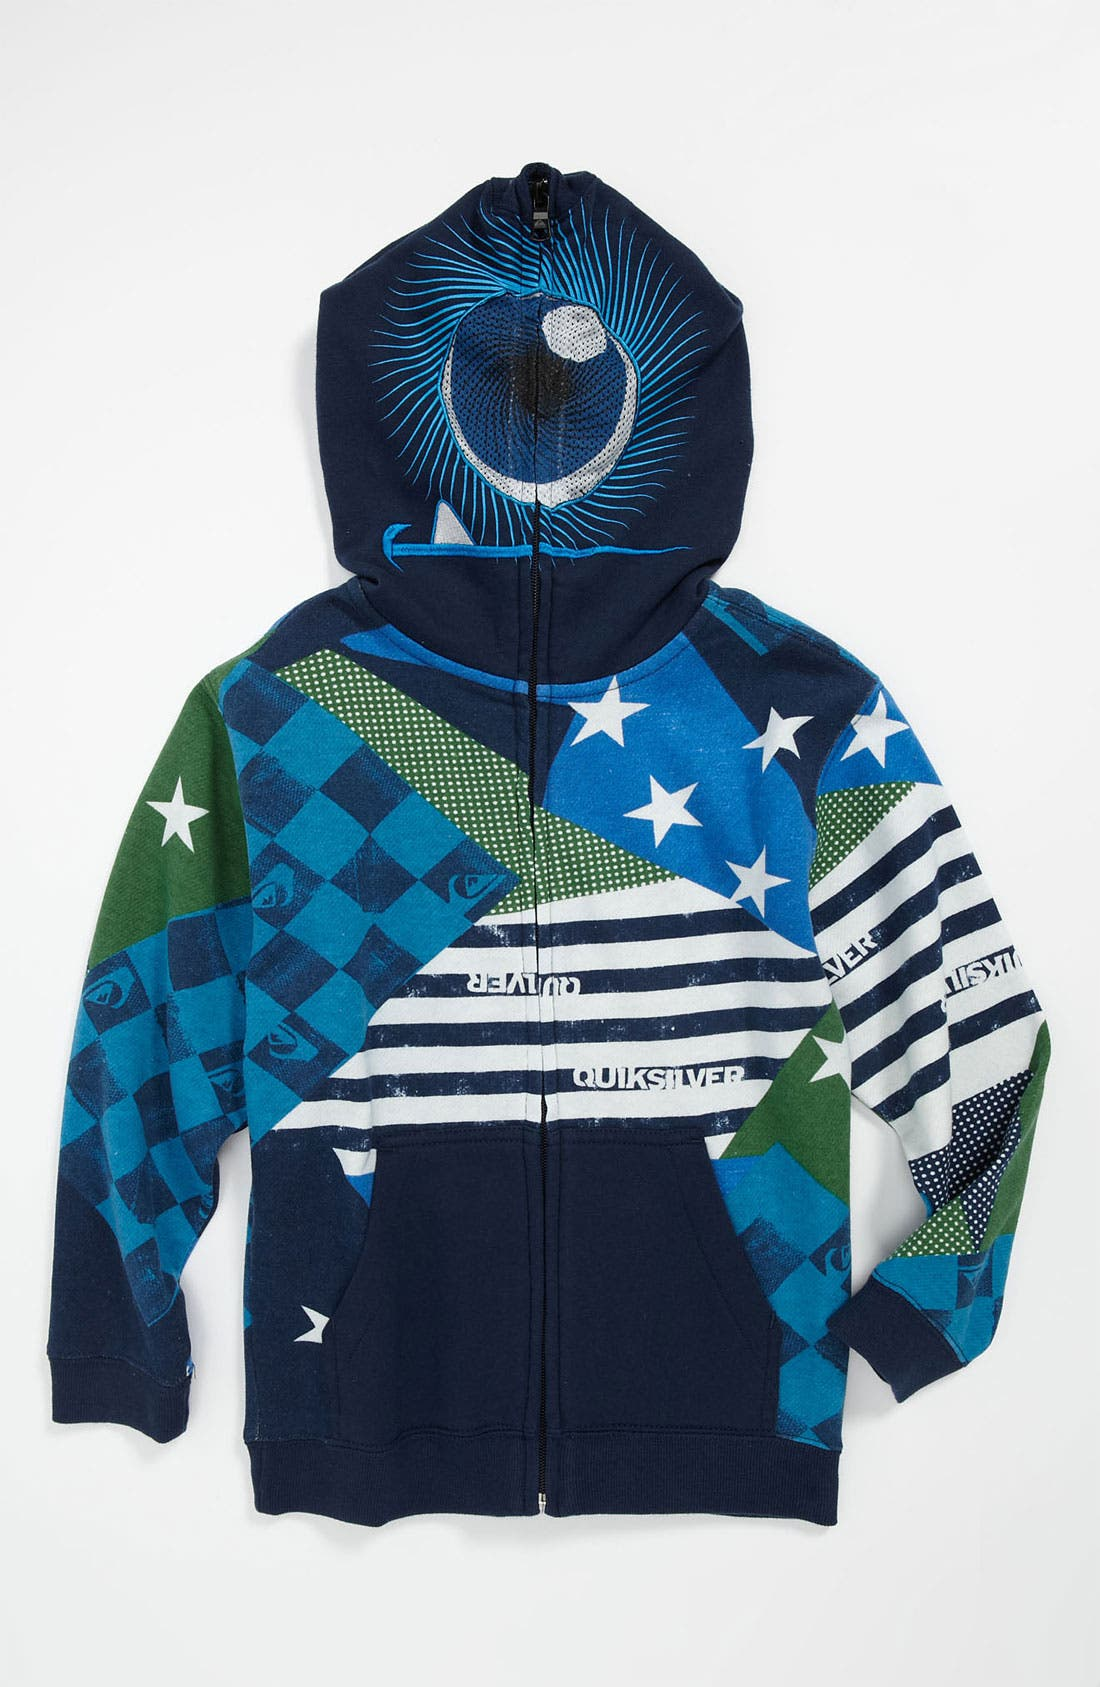 Alternate Image 1 Selected - Quiksilver 'So Sick' Mask Hoodie (Little Boys)